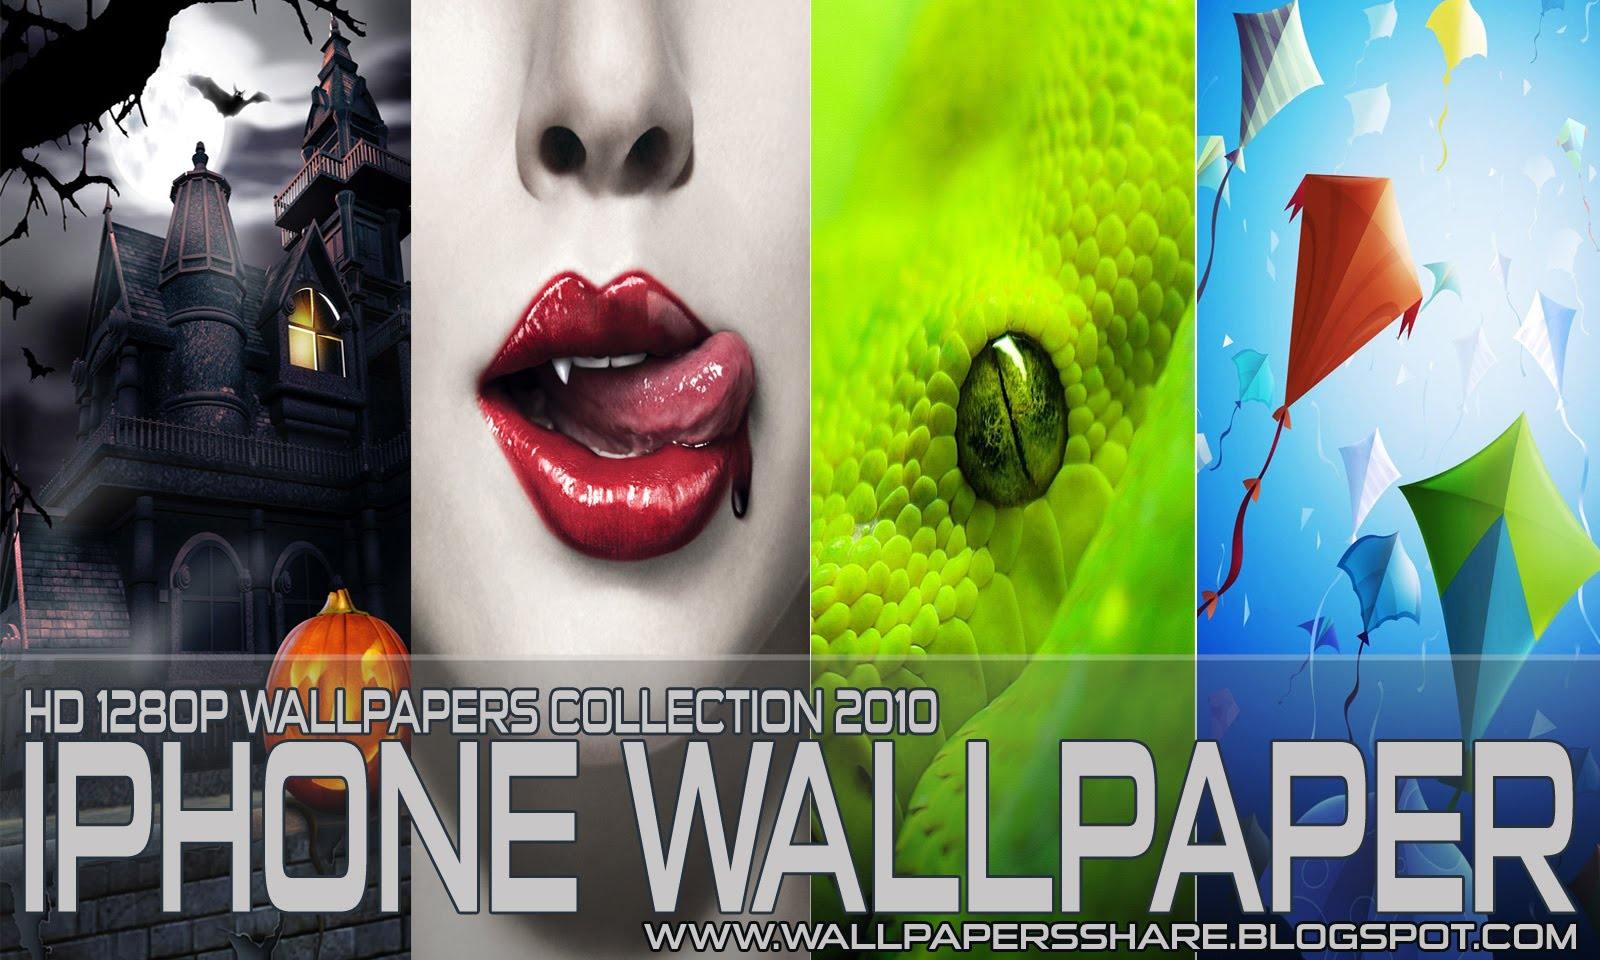 Best Iphone Wallpapers For Iphone 4 Iphone 3gs Ipod